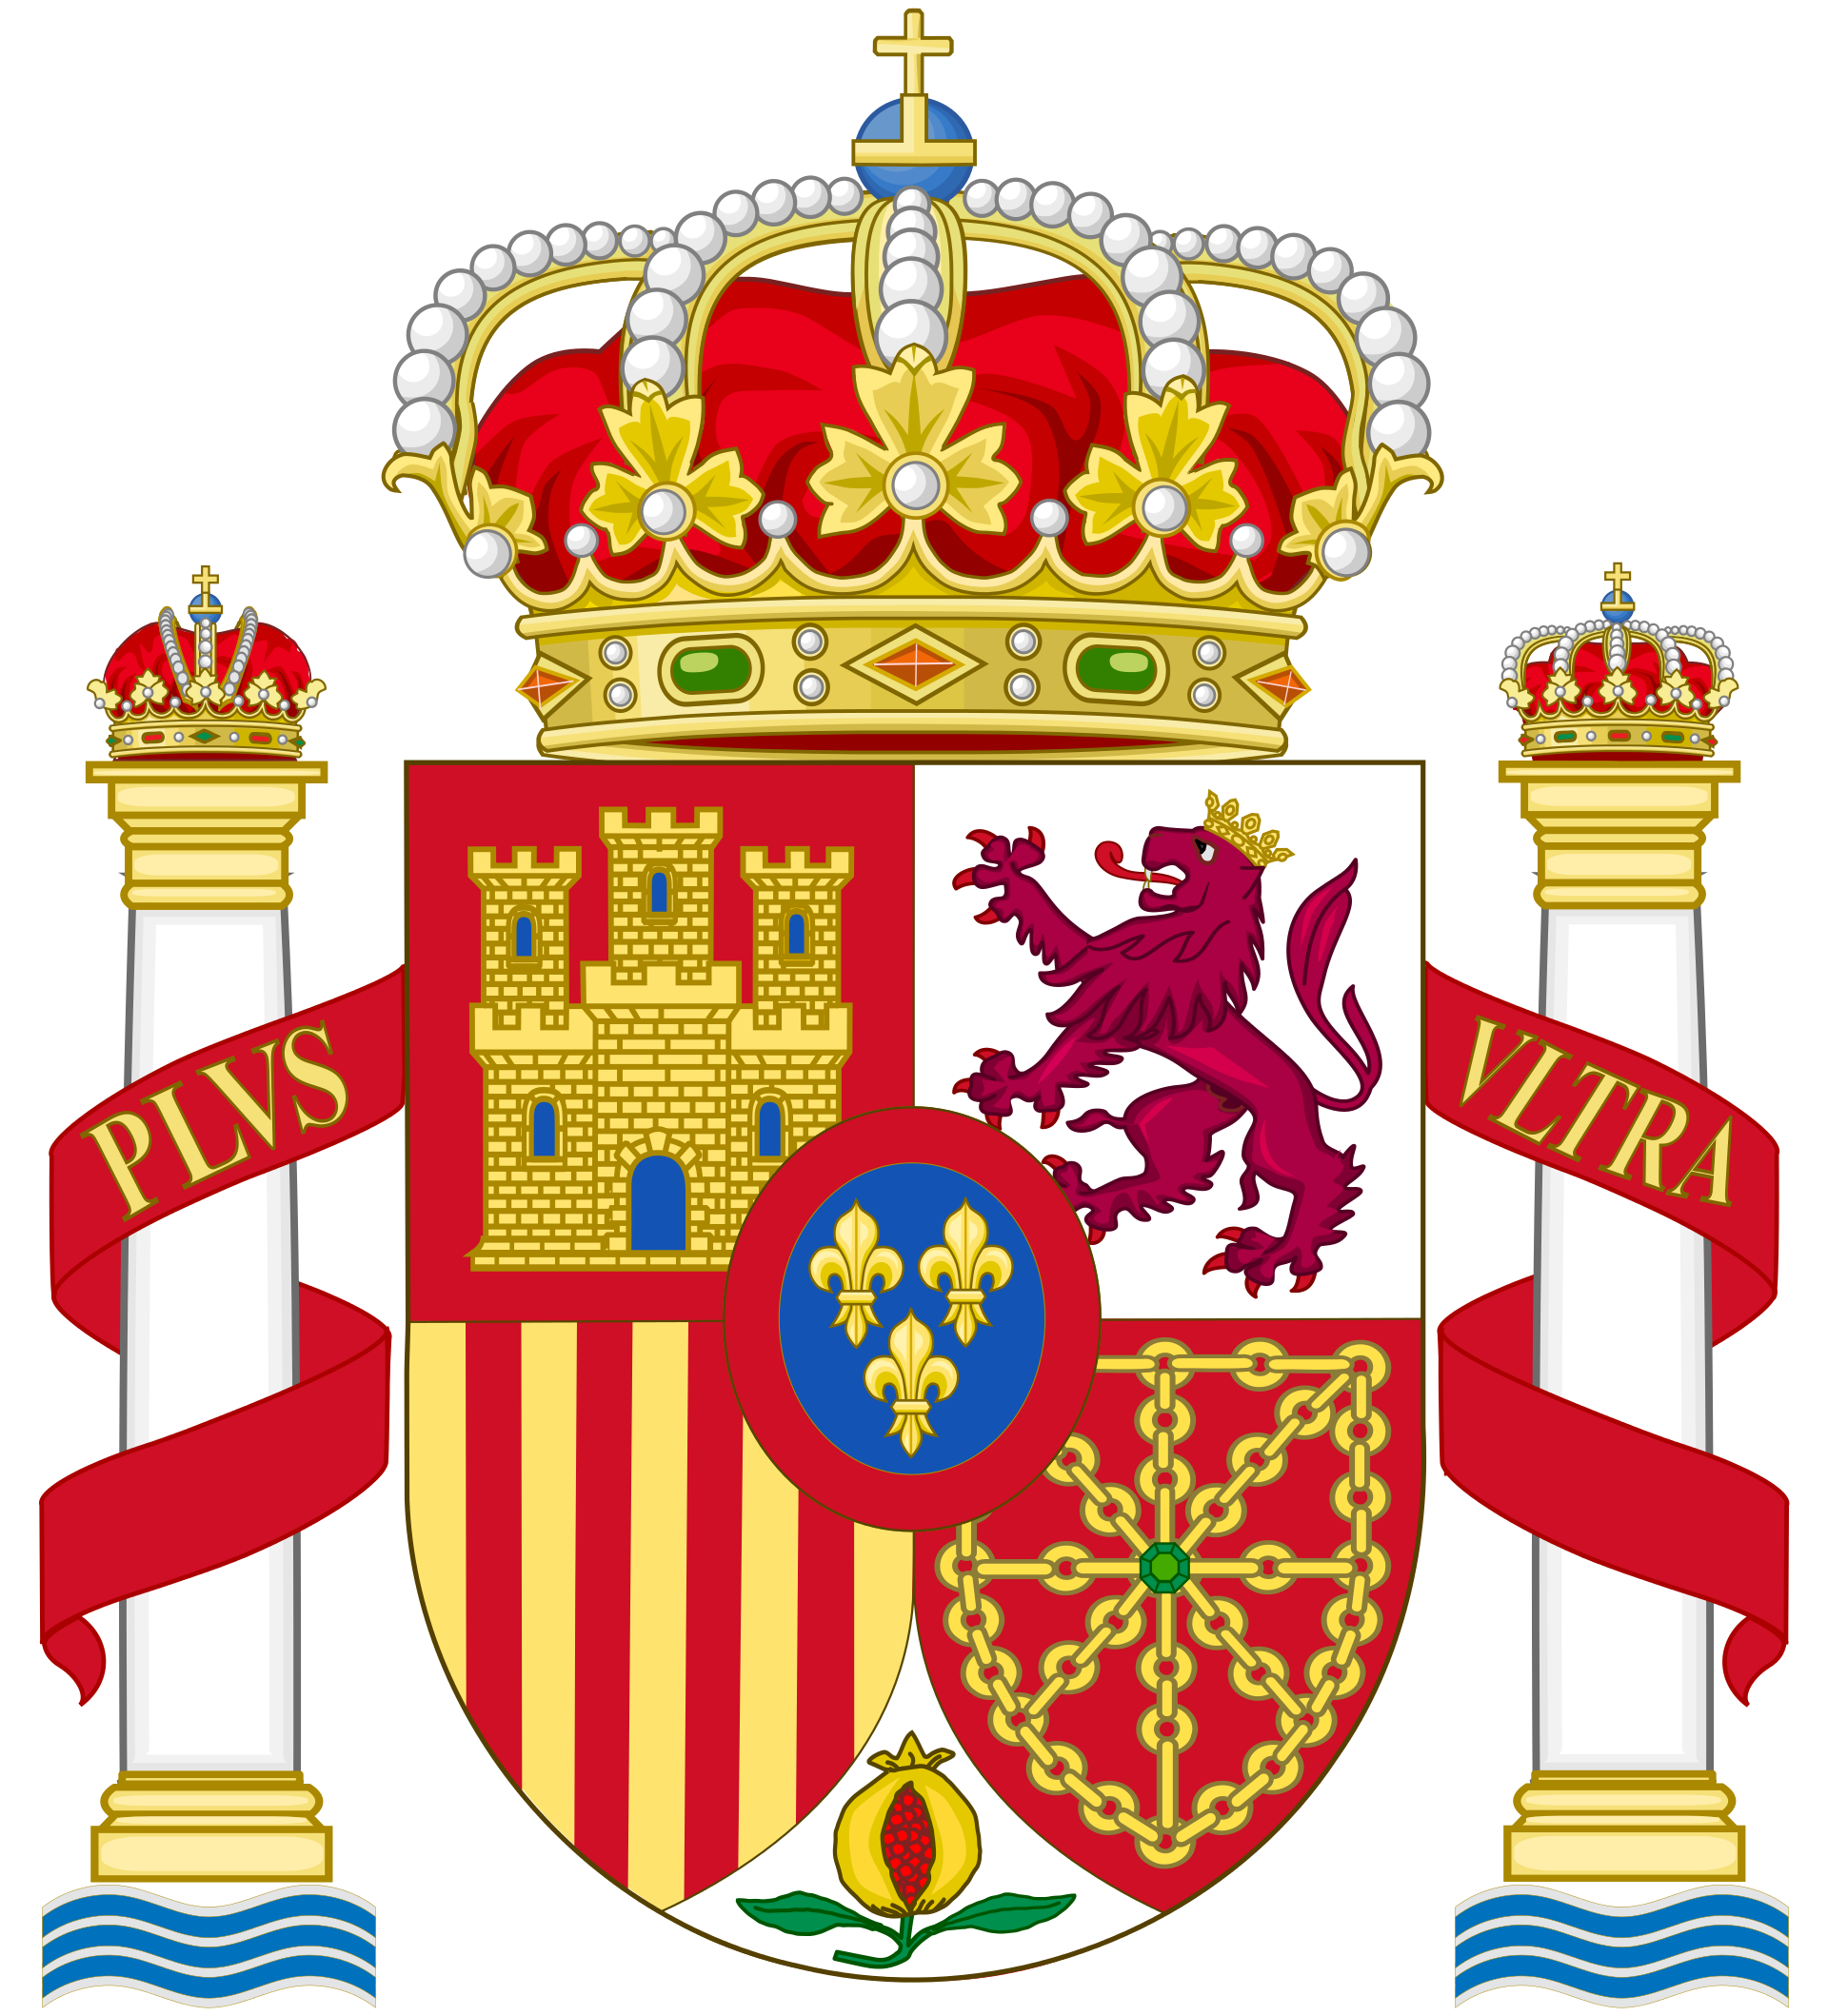 kisspng-coat-of-arms-of-spain-spanish-empire-coat-of-arms-plus-ultra-5be5c498ddefd2.0888670415417847289091